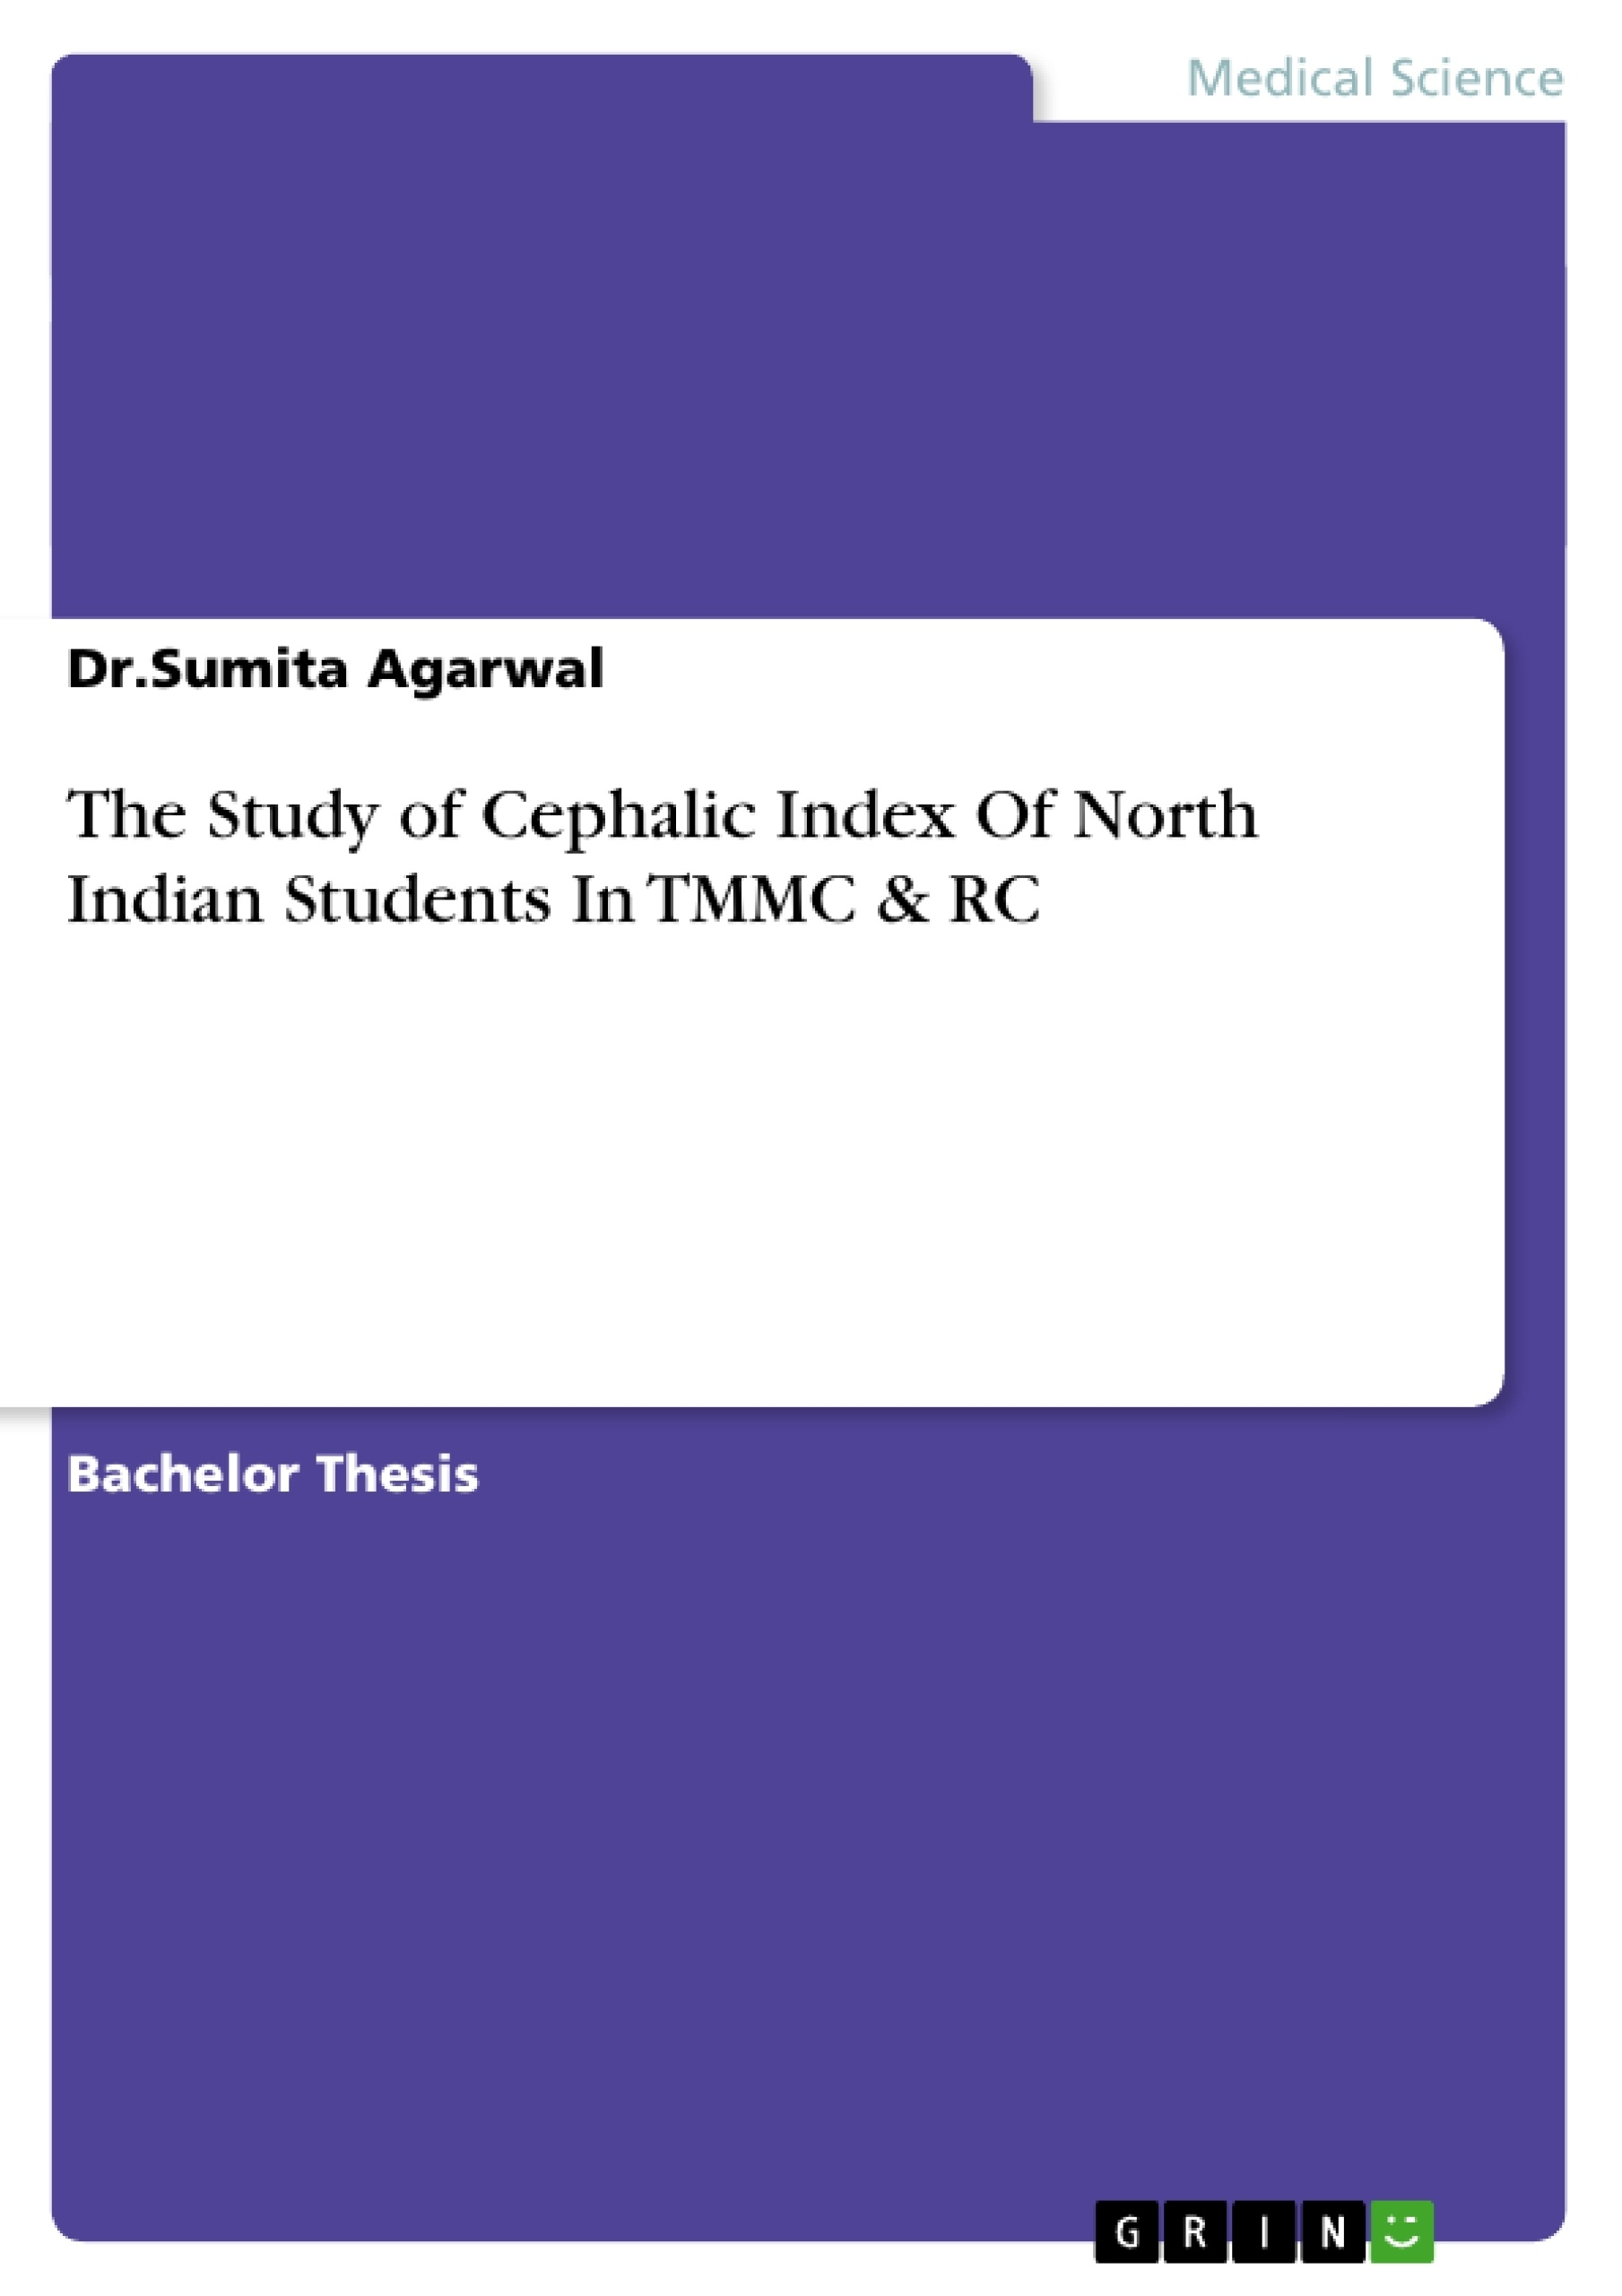 Title: The Study of Cephalic Index Of North Indian Students In TMMC & RC